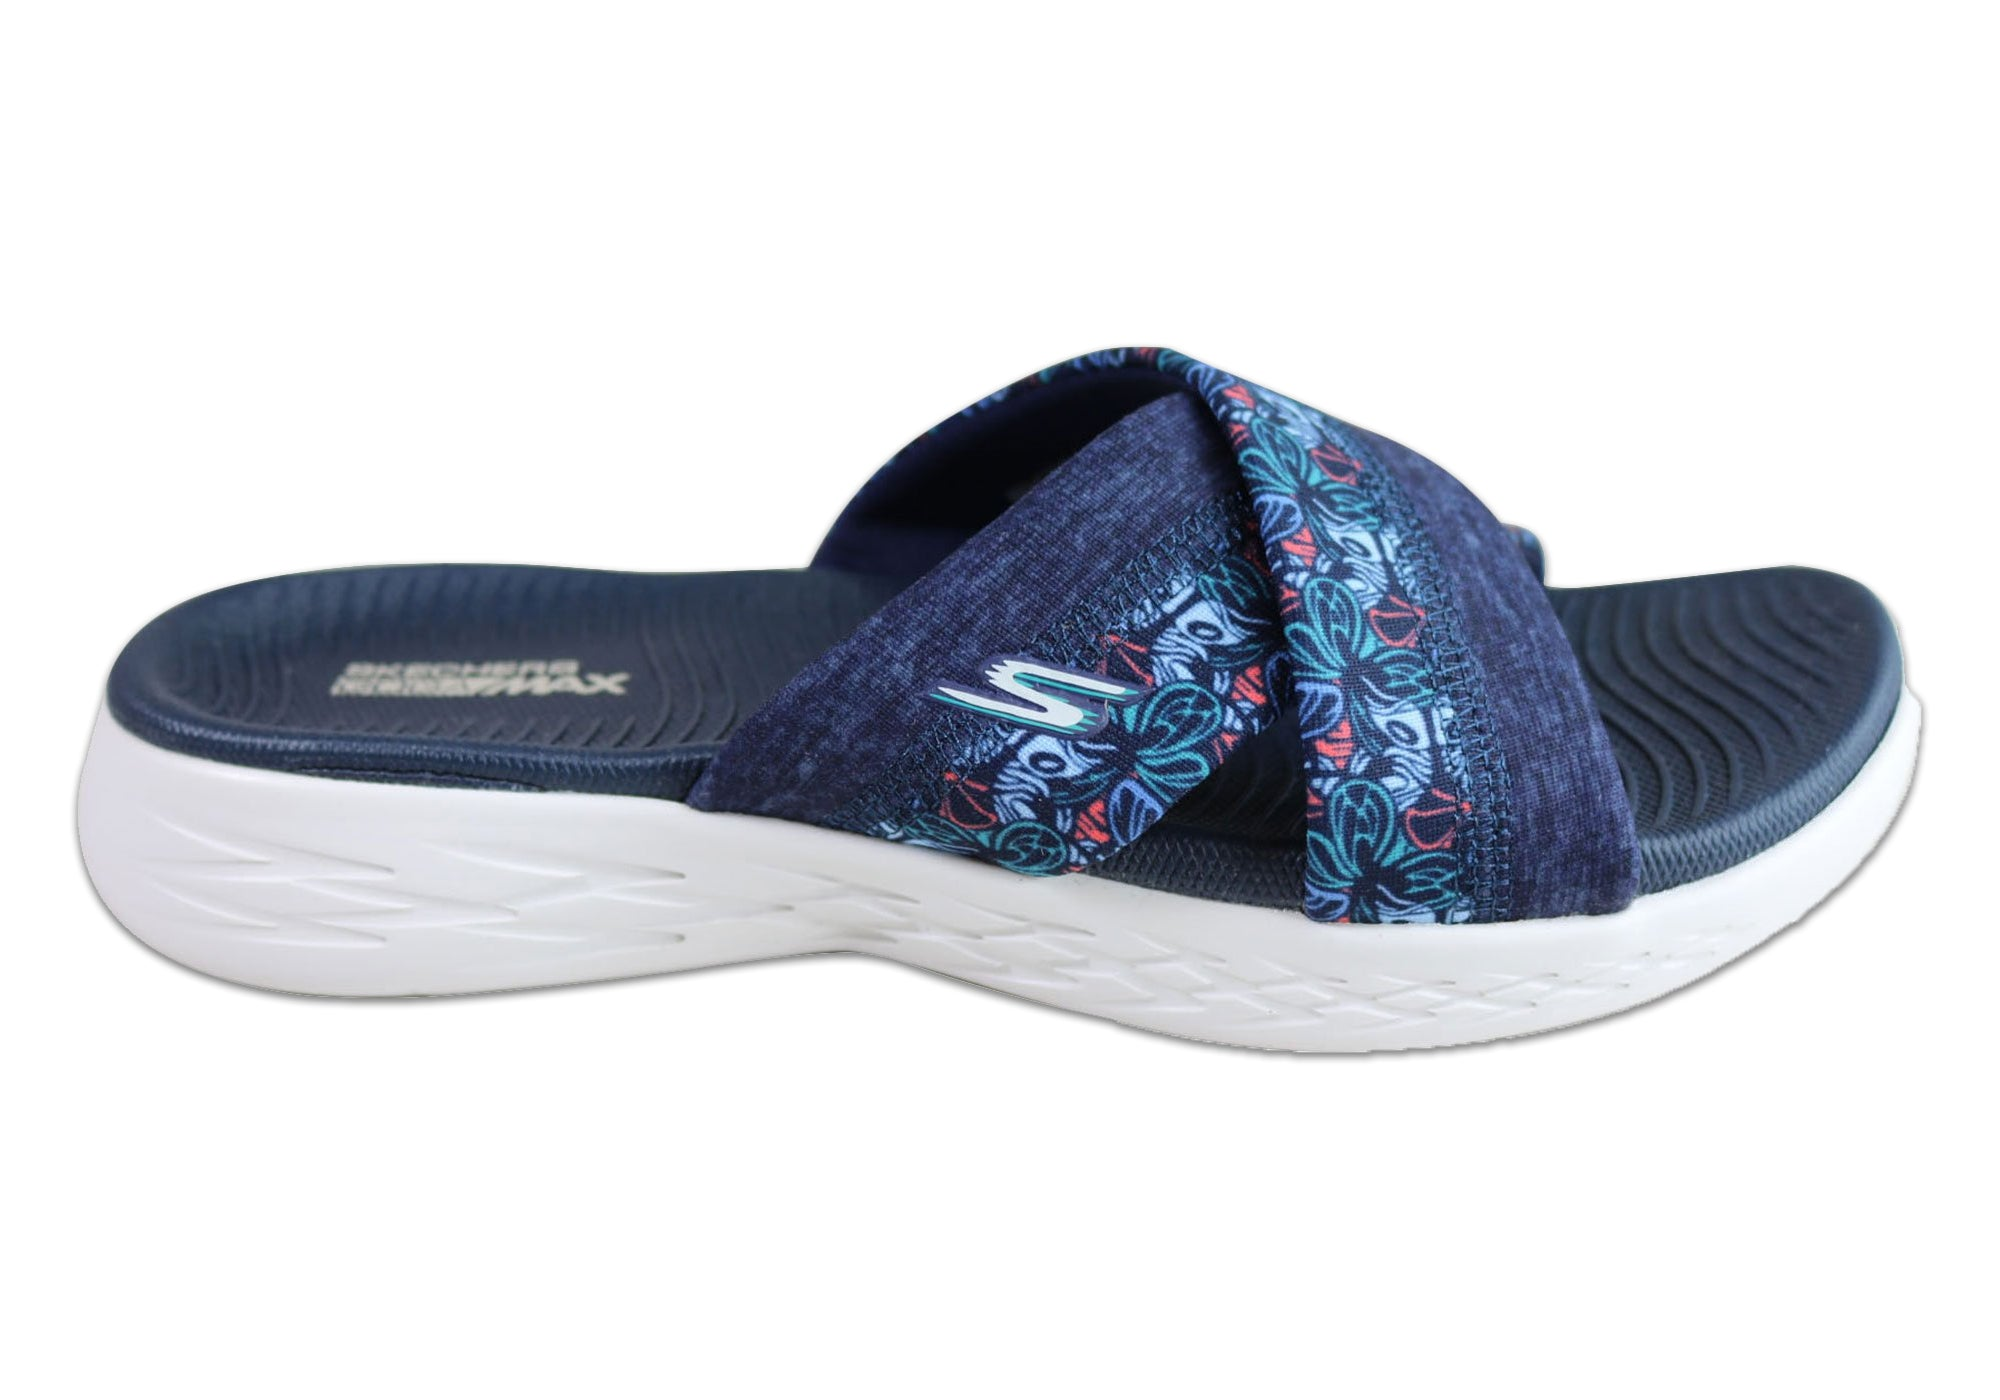 eac40dcdab67 Home Skechers Womens On The Go 600 Monarch Cushioned Slide Sandals. Navy ...